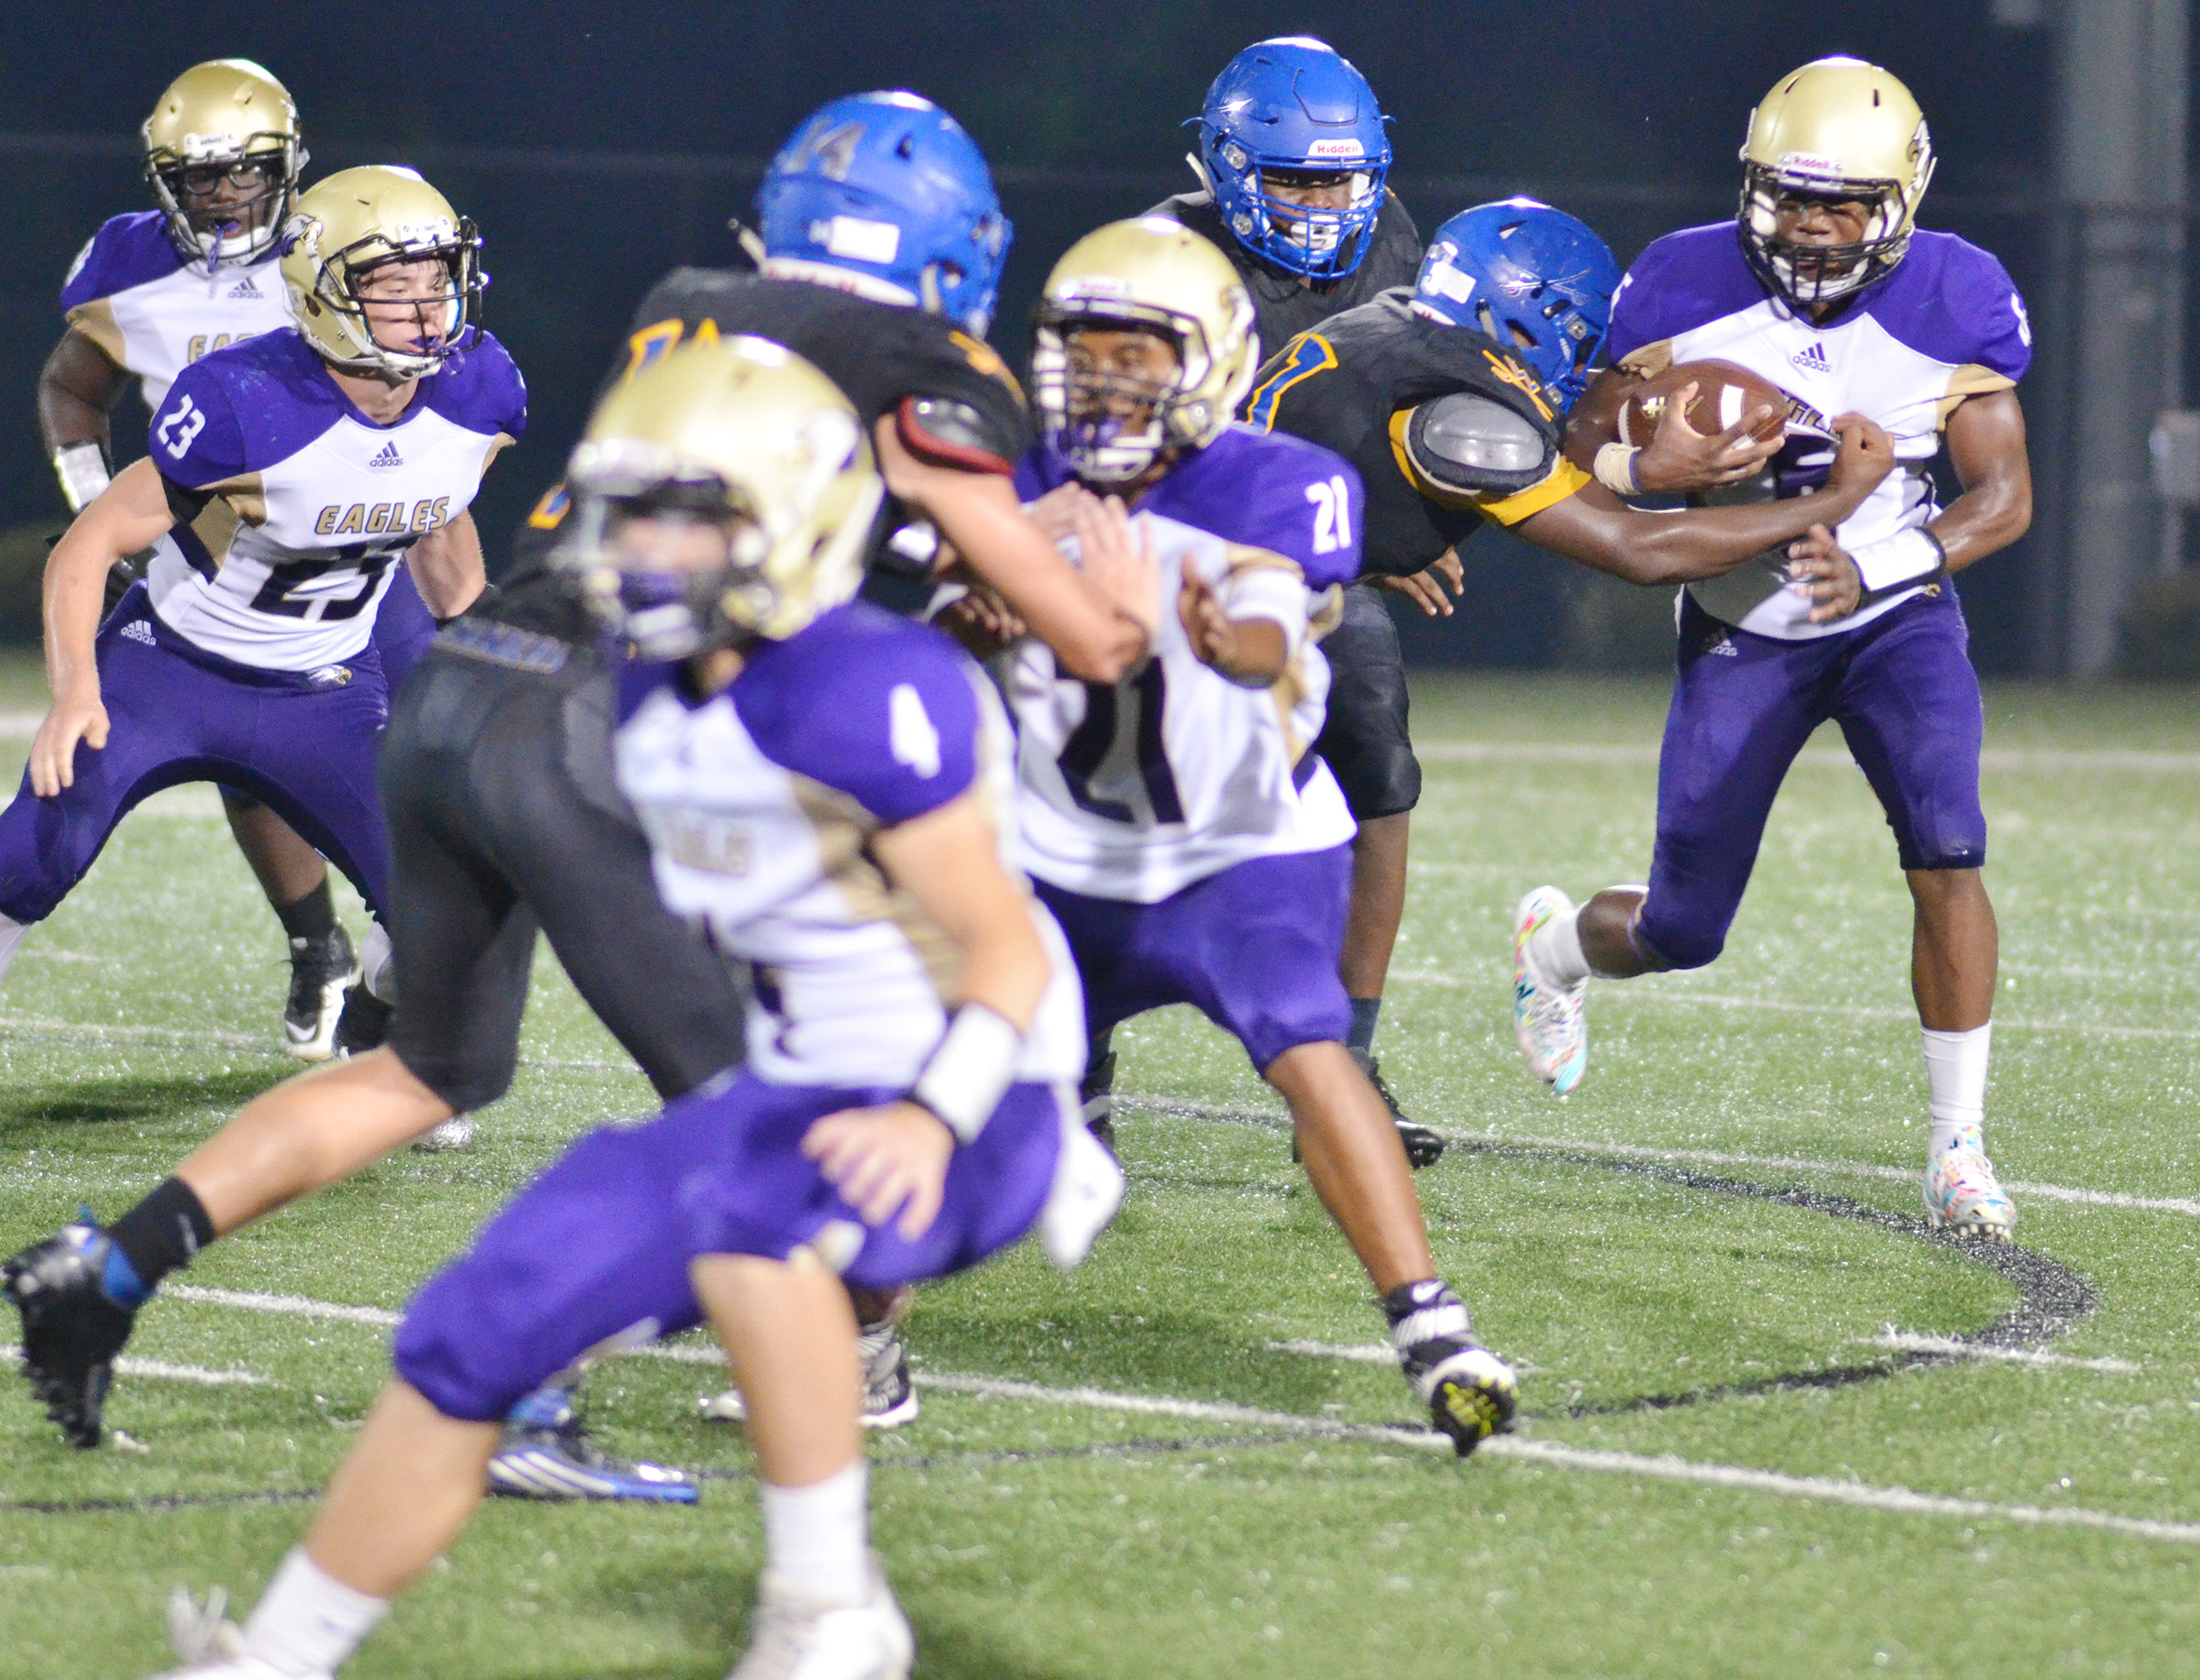 CHS sophomore Malachi Corley runs the ball as his teammates block.